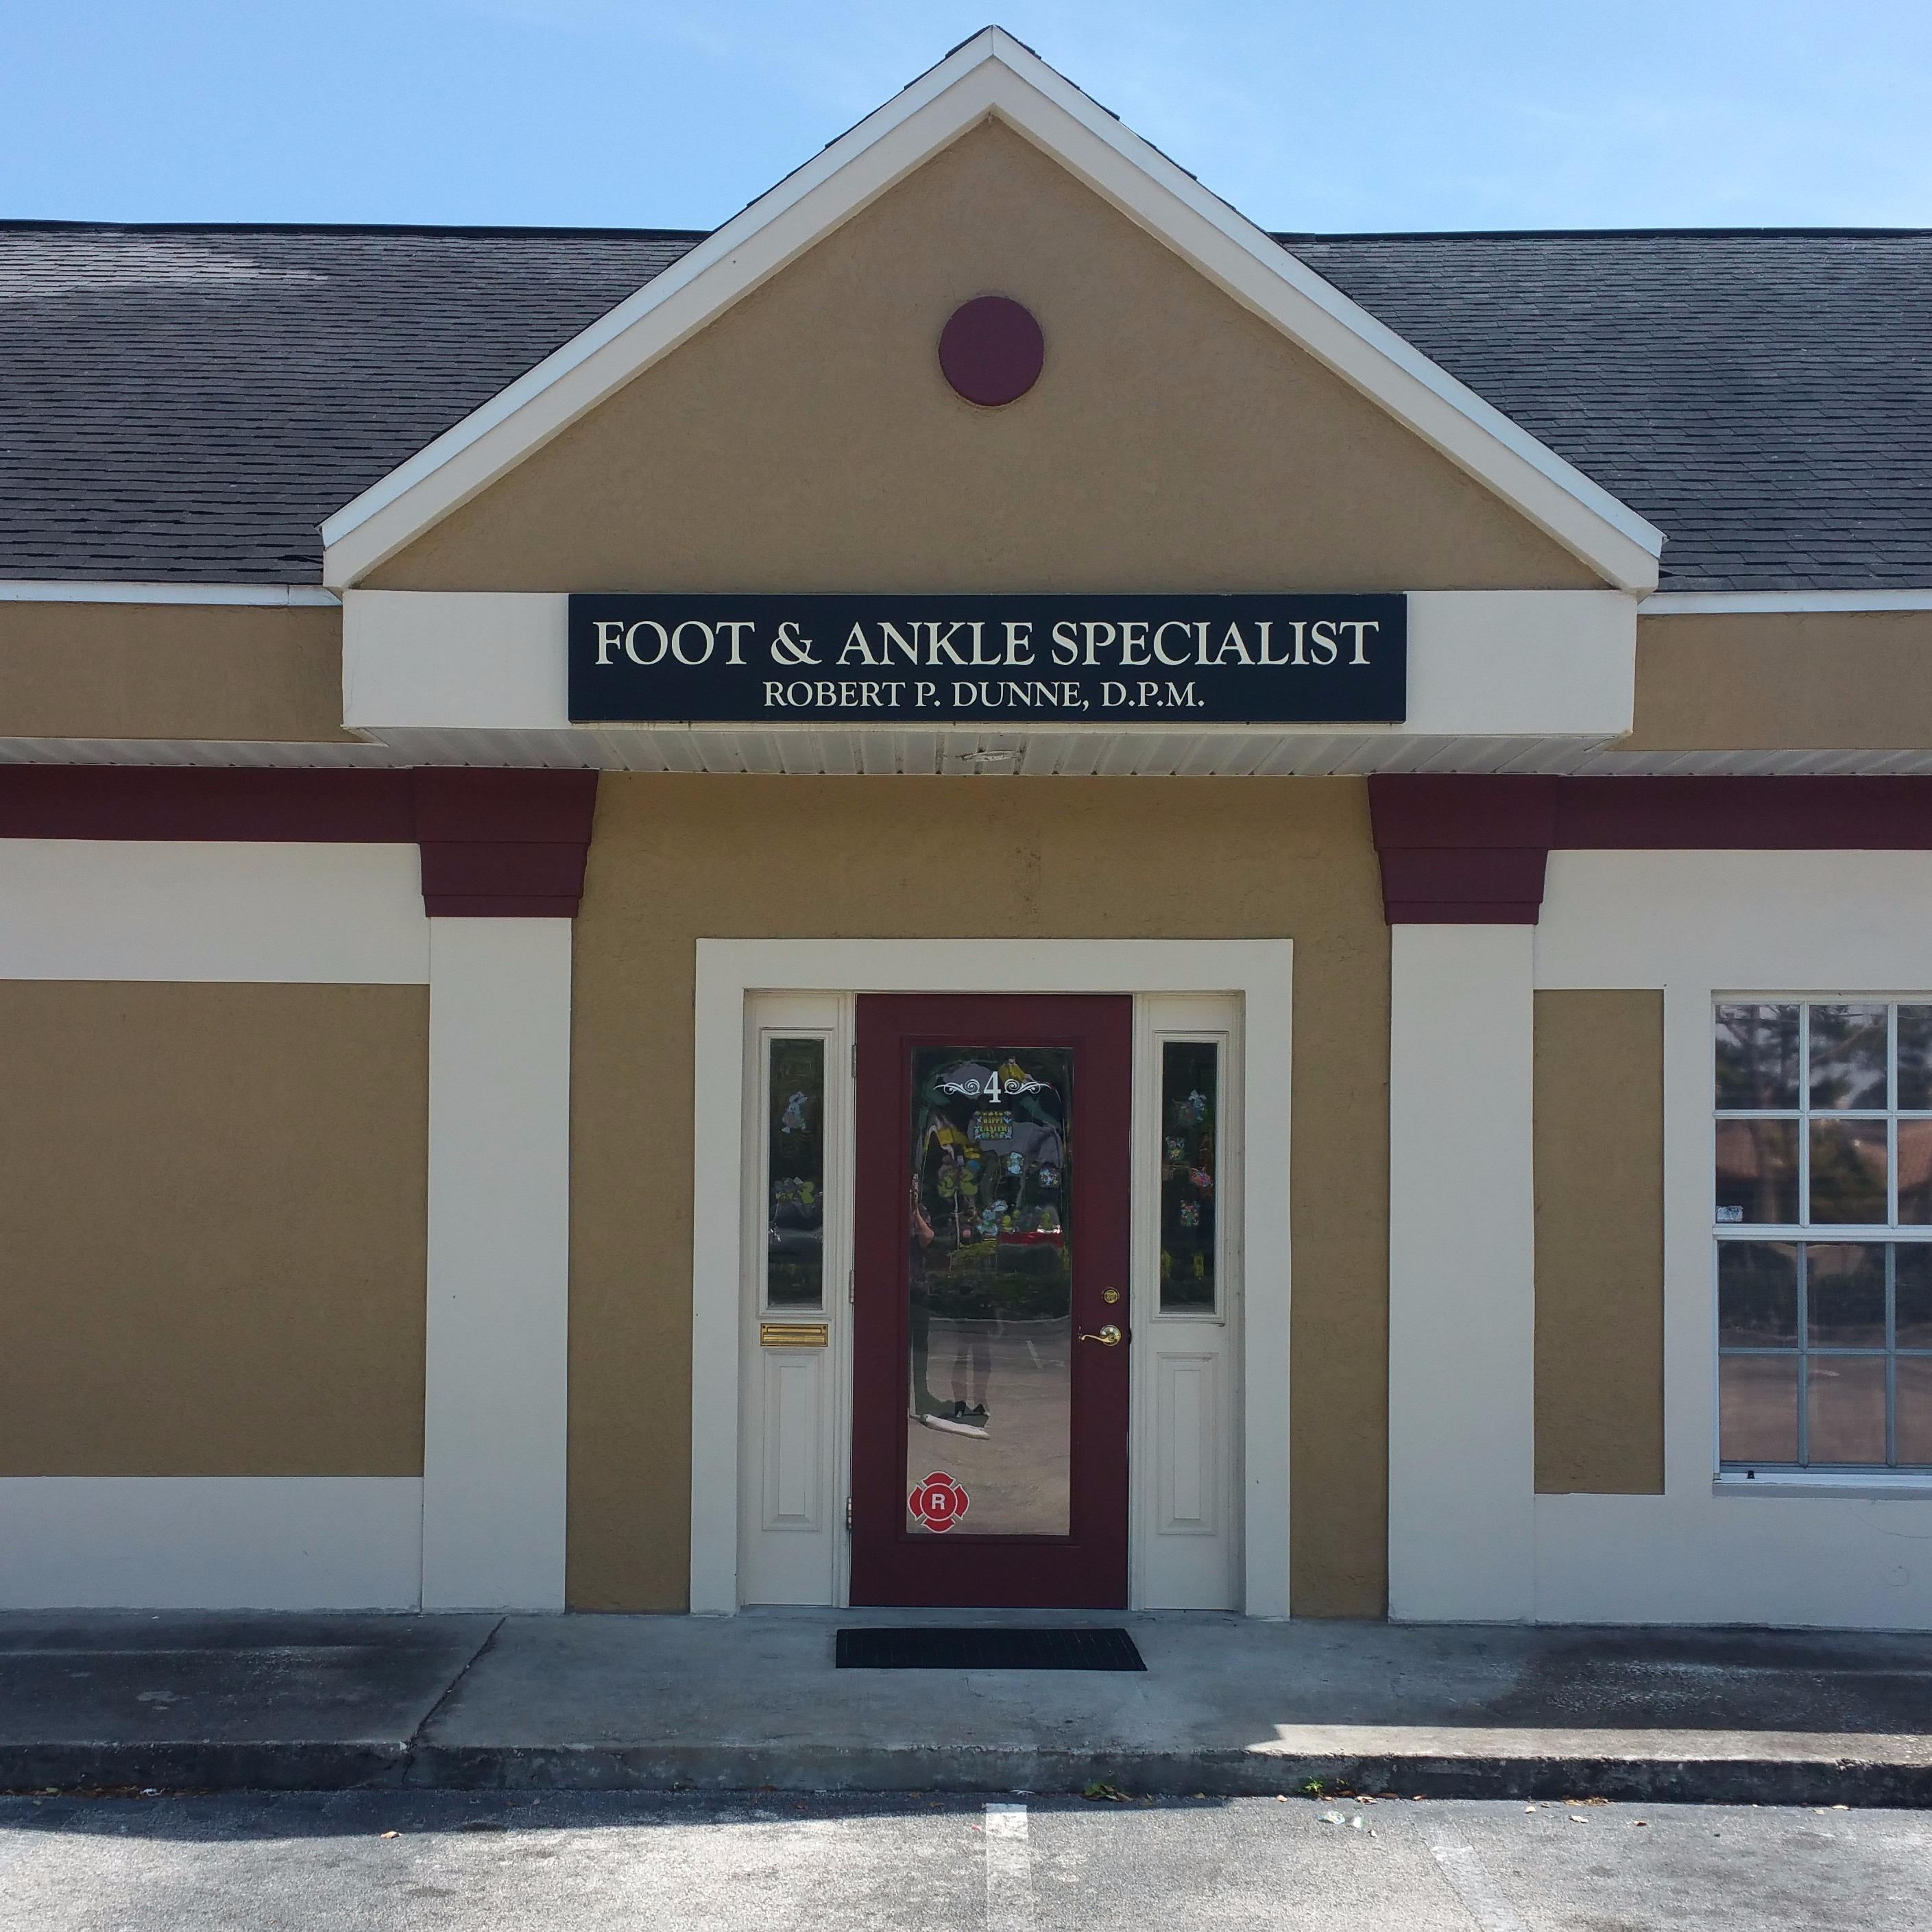 Lake Washington Foot & Ankle - Melbourne, FL 32935 - (321) 253-6191 | ShowMeLocal.com